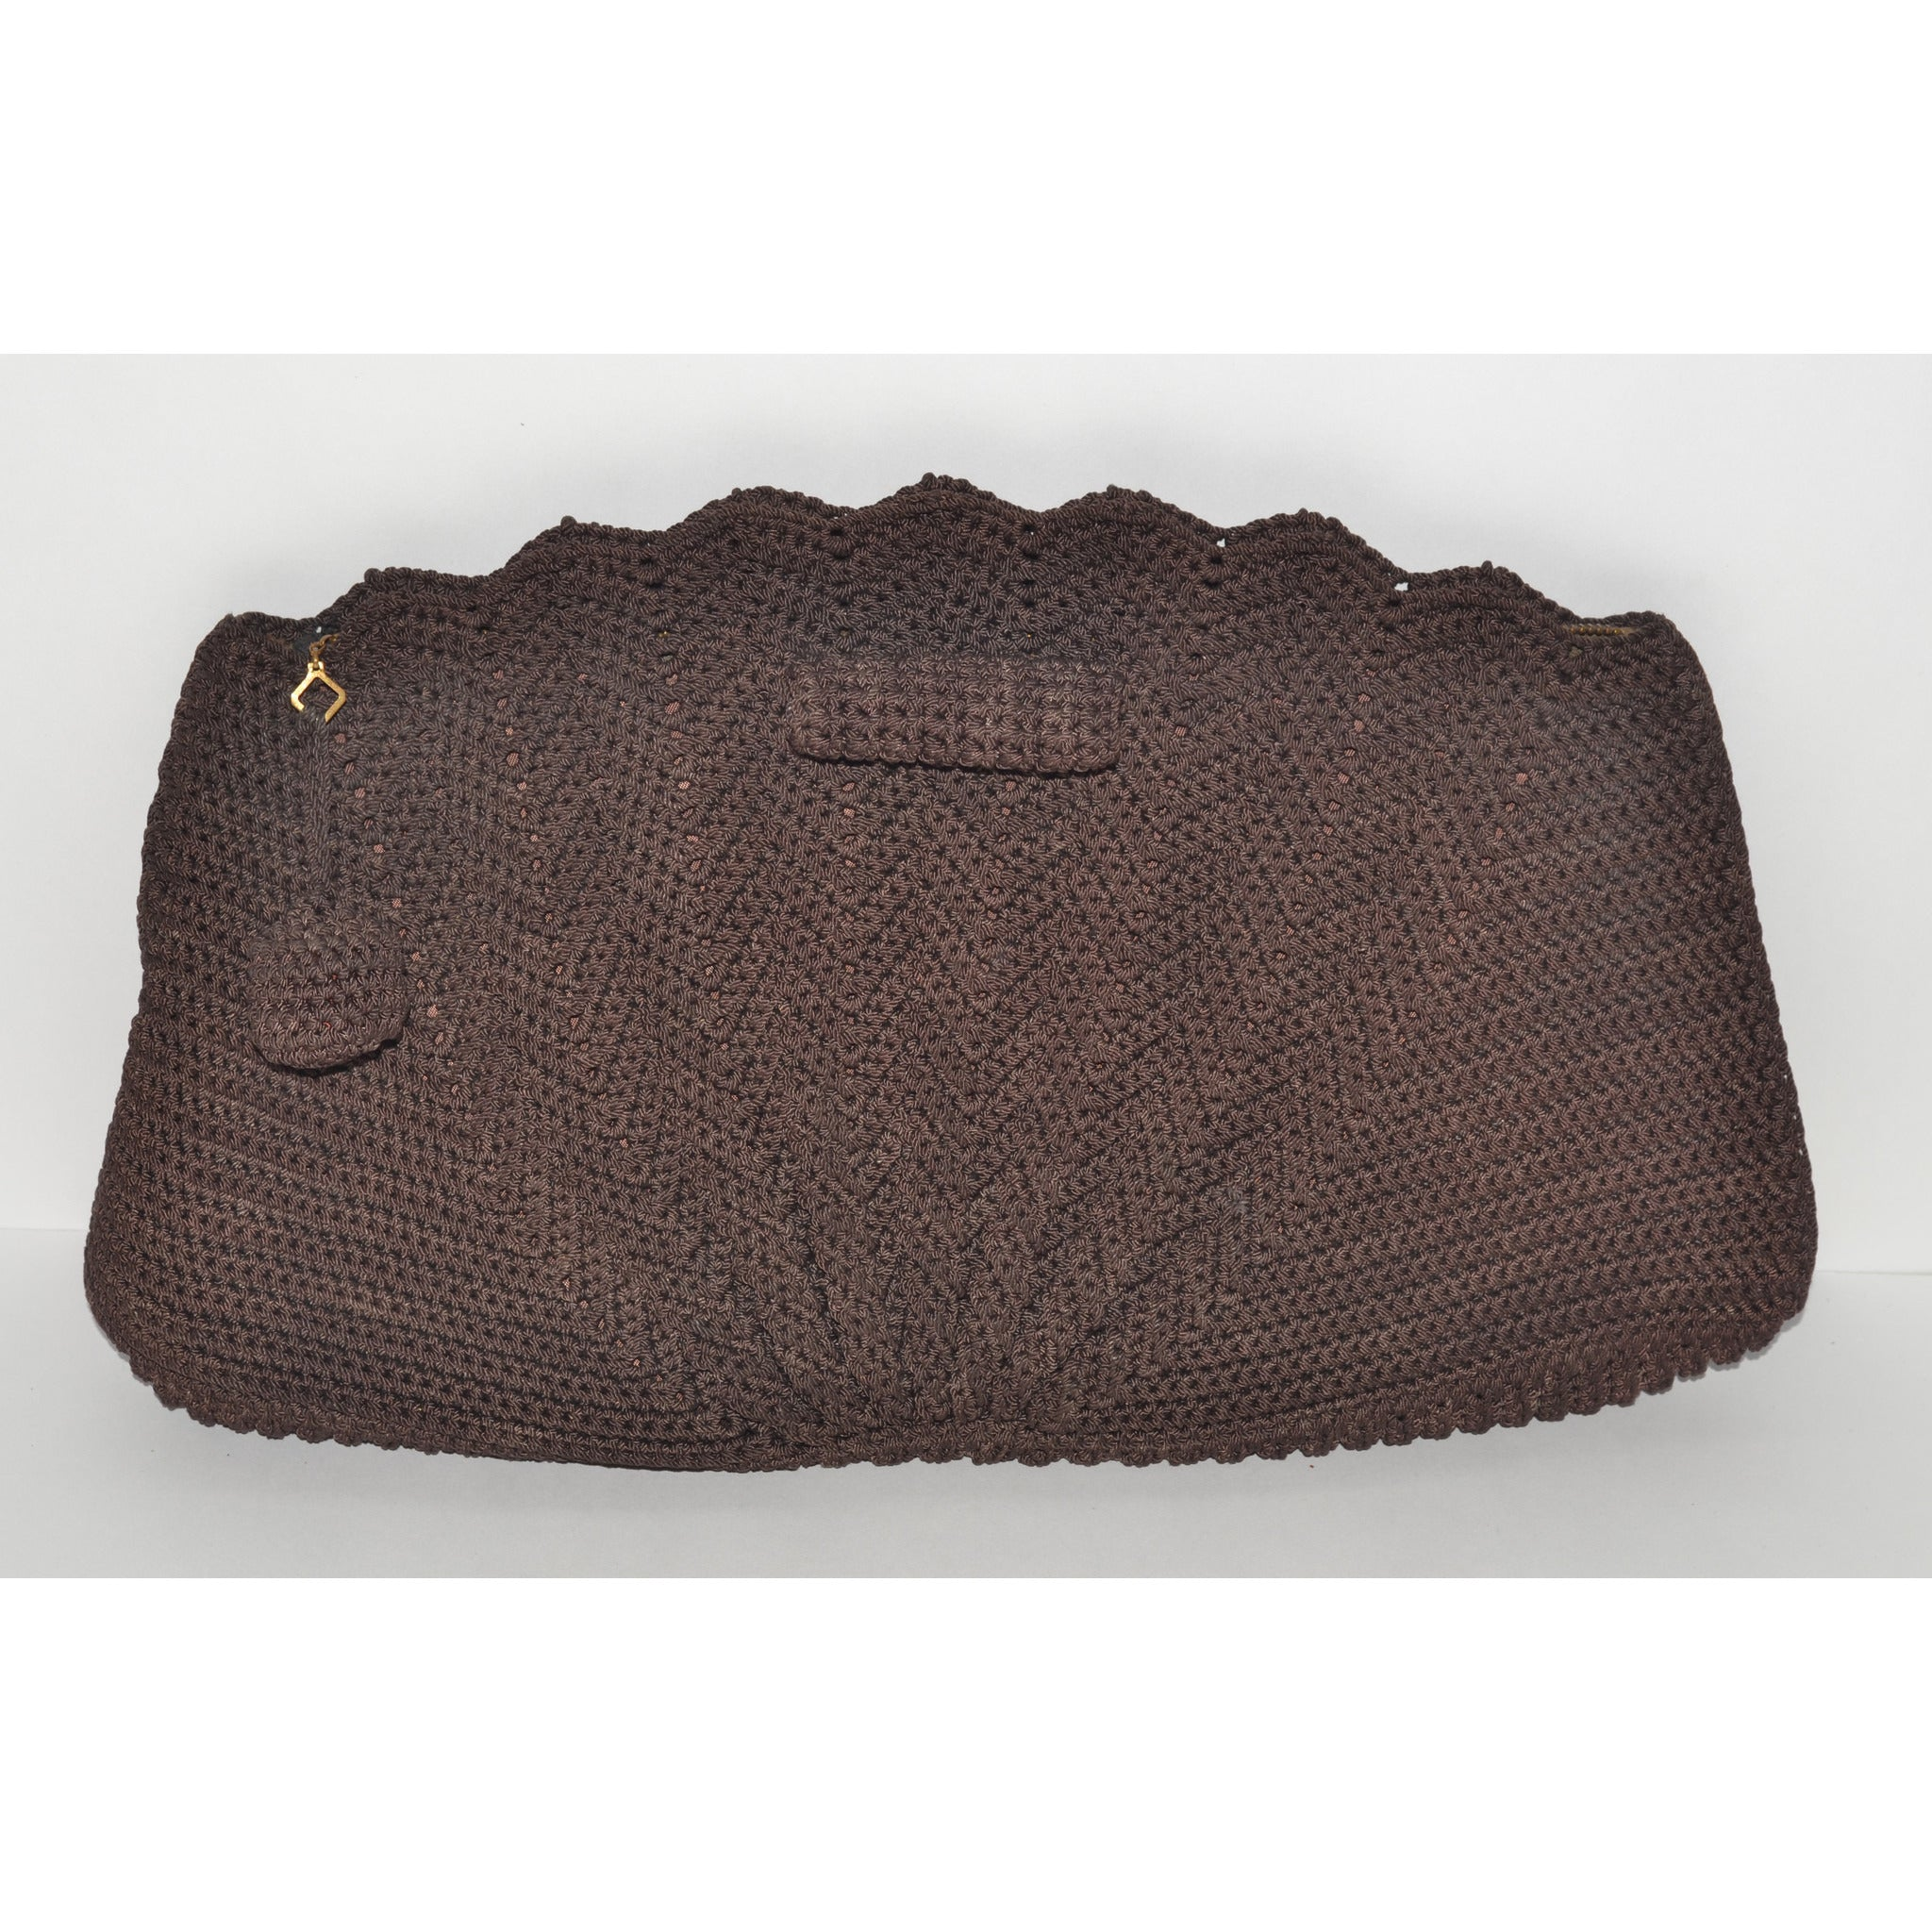 Vintage Brown Crochet Fan Clutch Purse